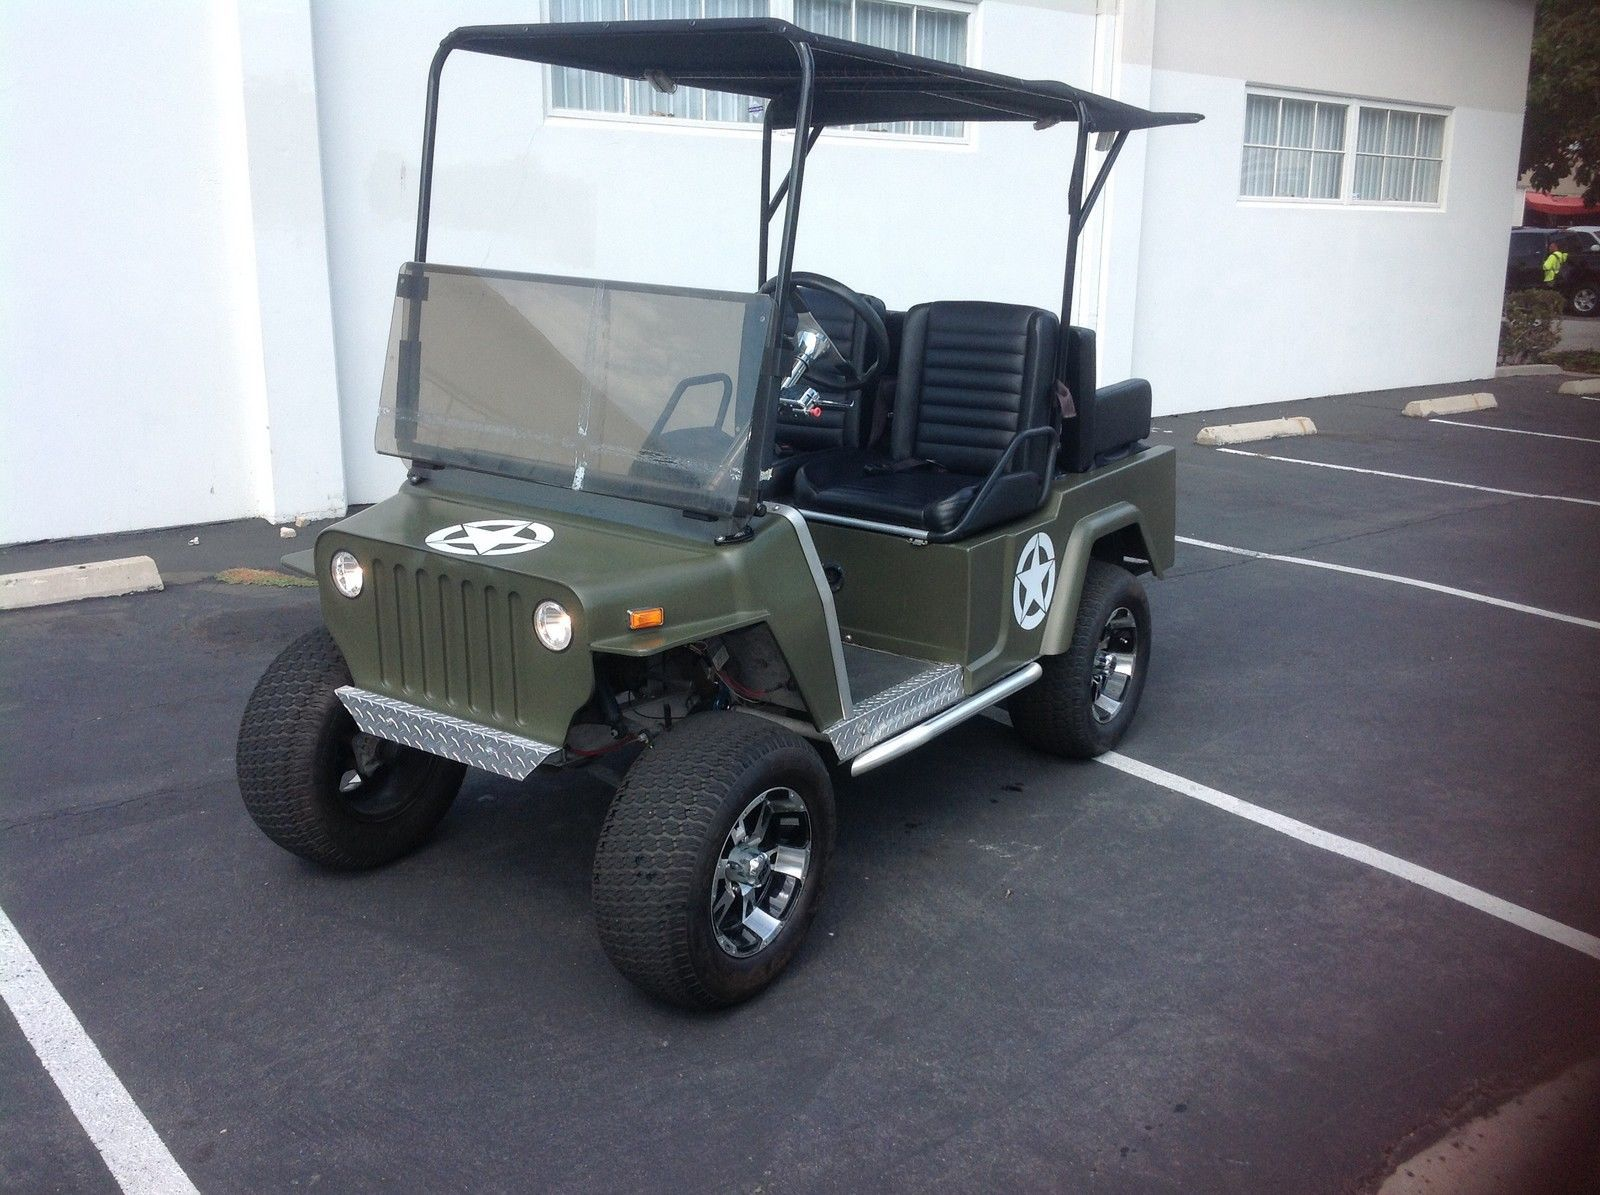 Club car golf cart willys jeep custom 48v 48 volt green army style 12 alloy